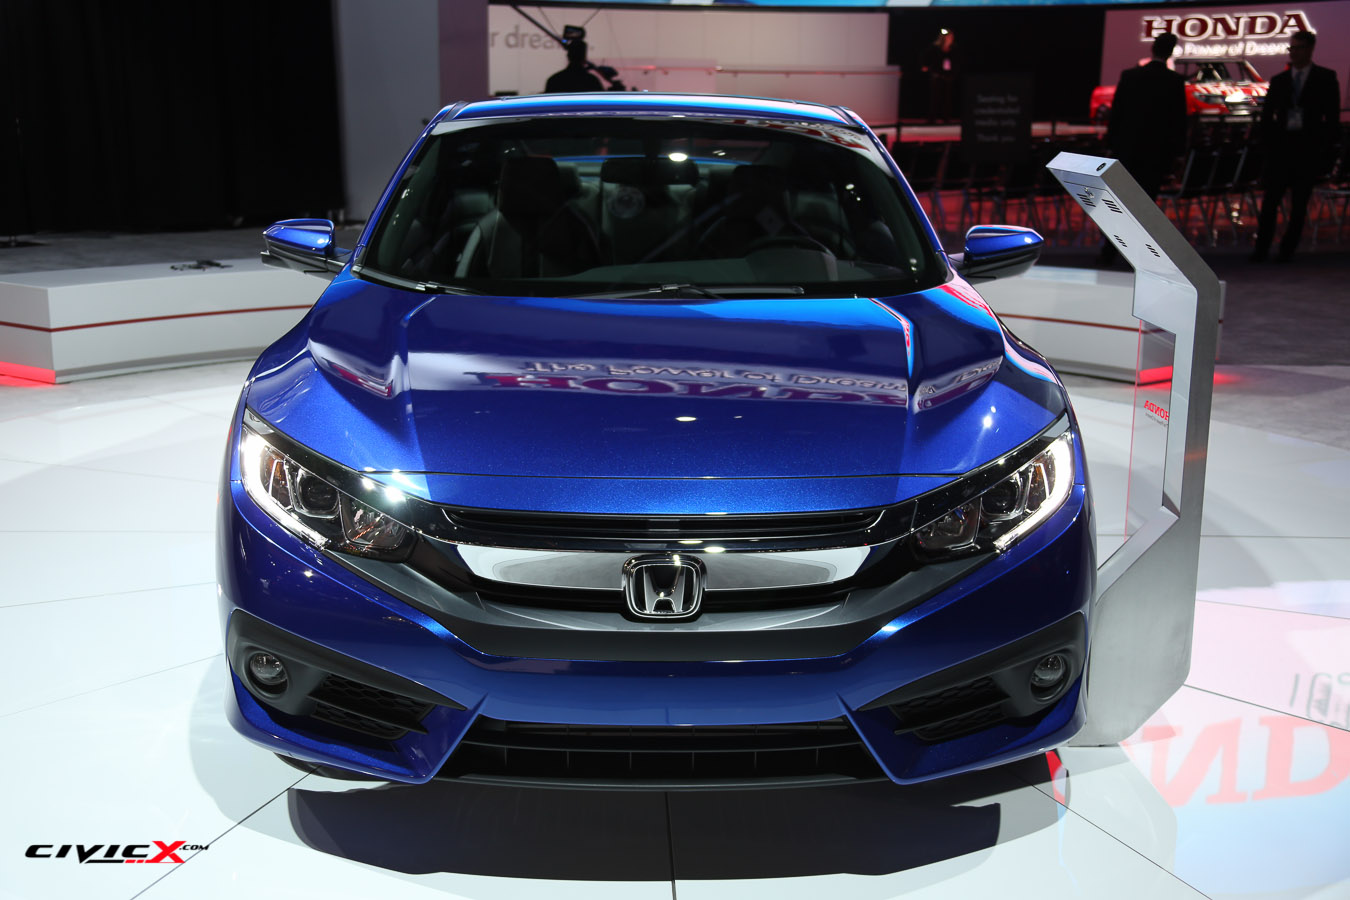 2016 Civic Coupe (Aegean Blue) - Detroit Auto Show.jpg